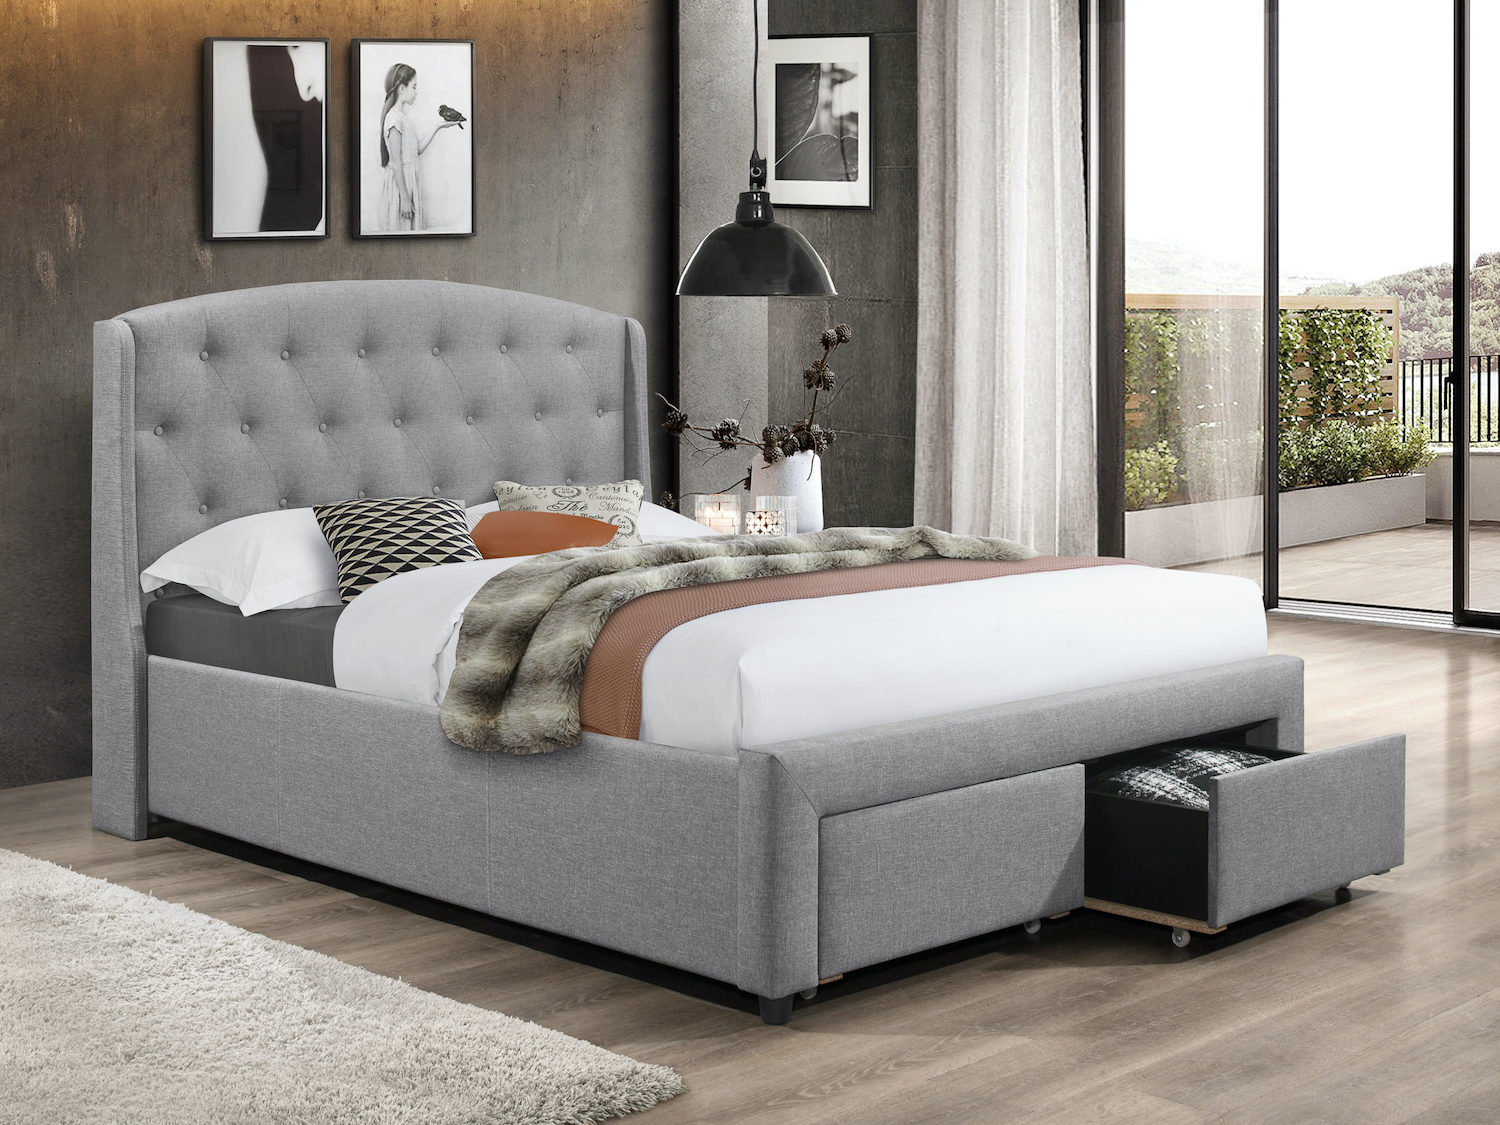 IFDC Tufted Grey Modern Queen Storage Bed, IF-5290, Beds, IFDC Tufted Grey Modern Queen Storage Bed from IFDC